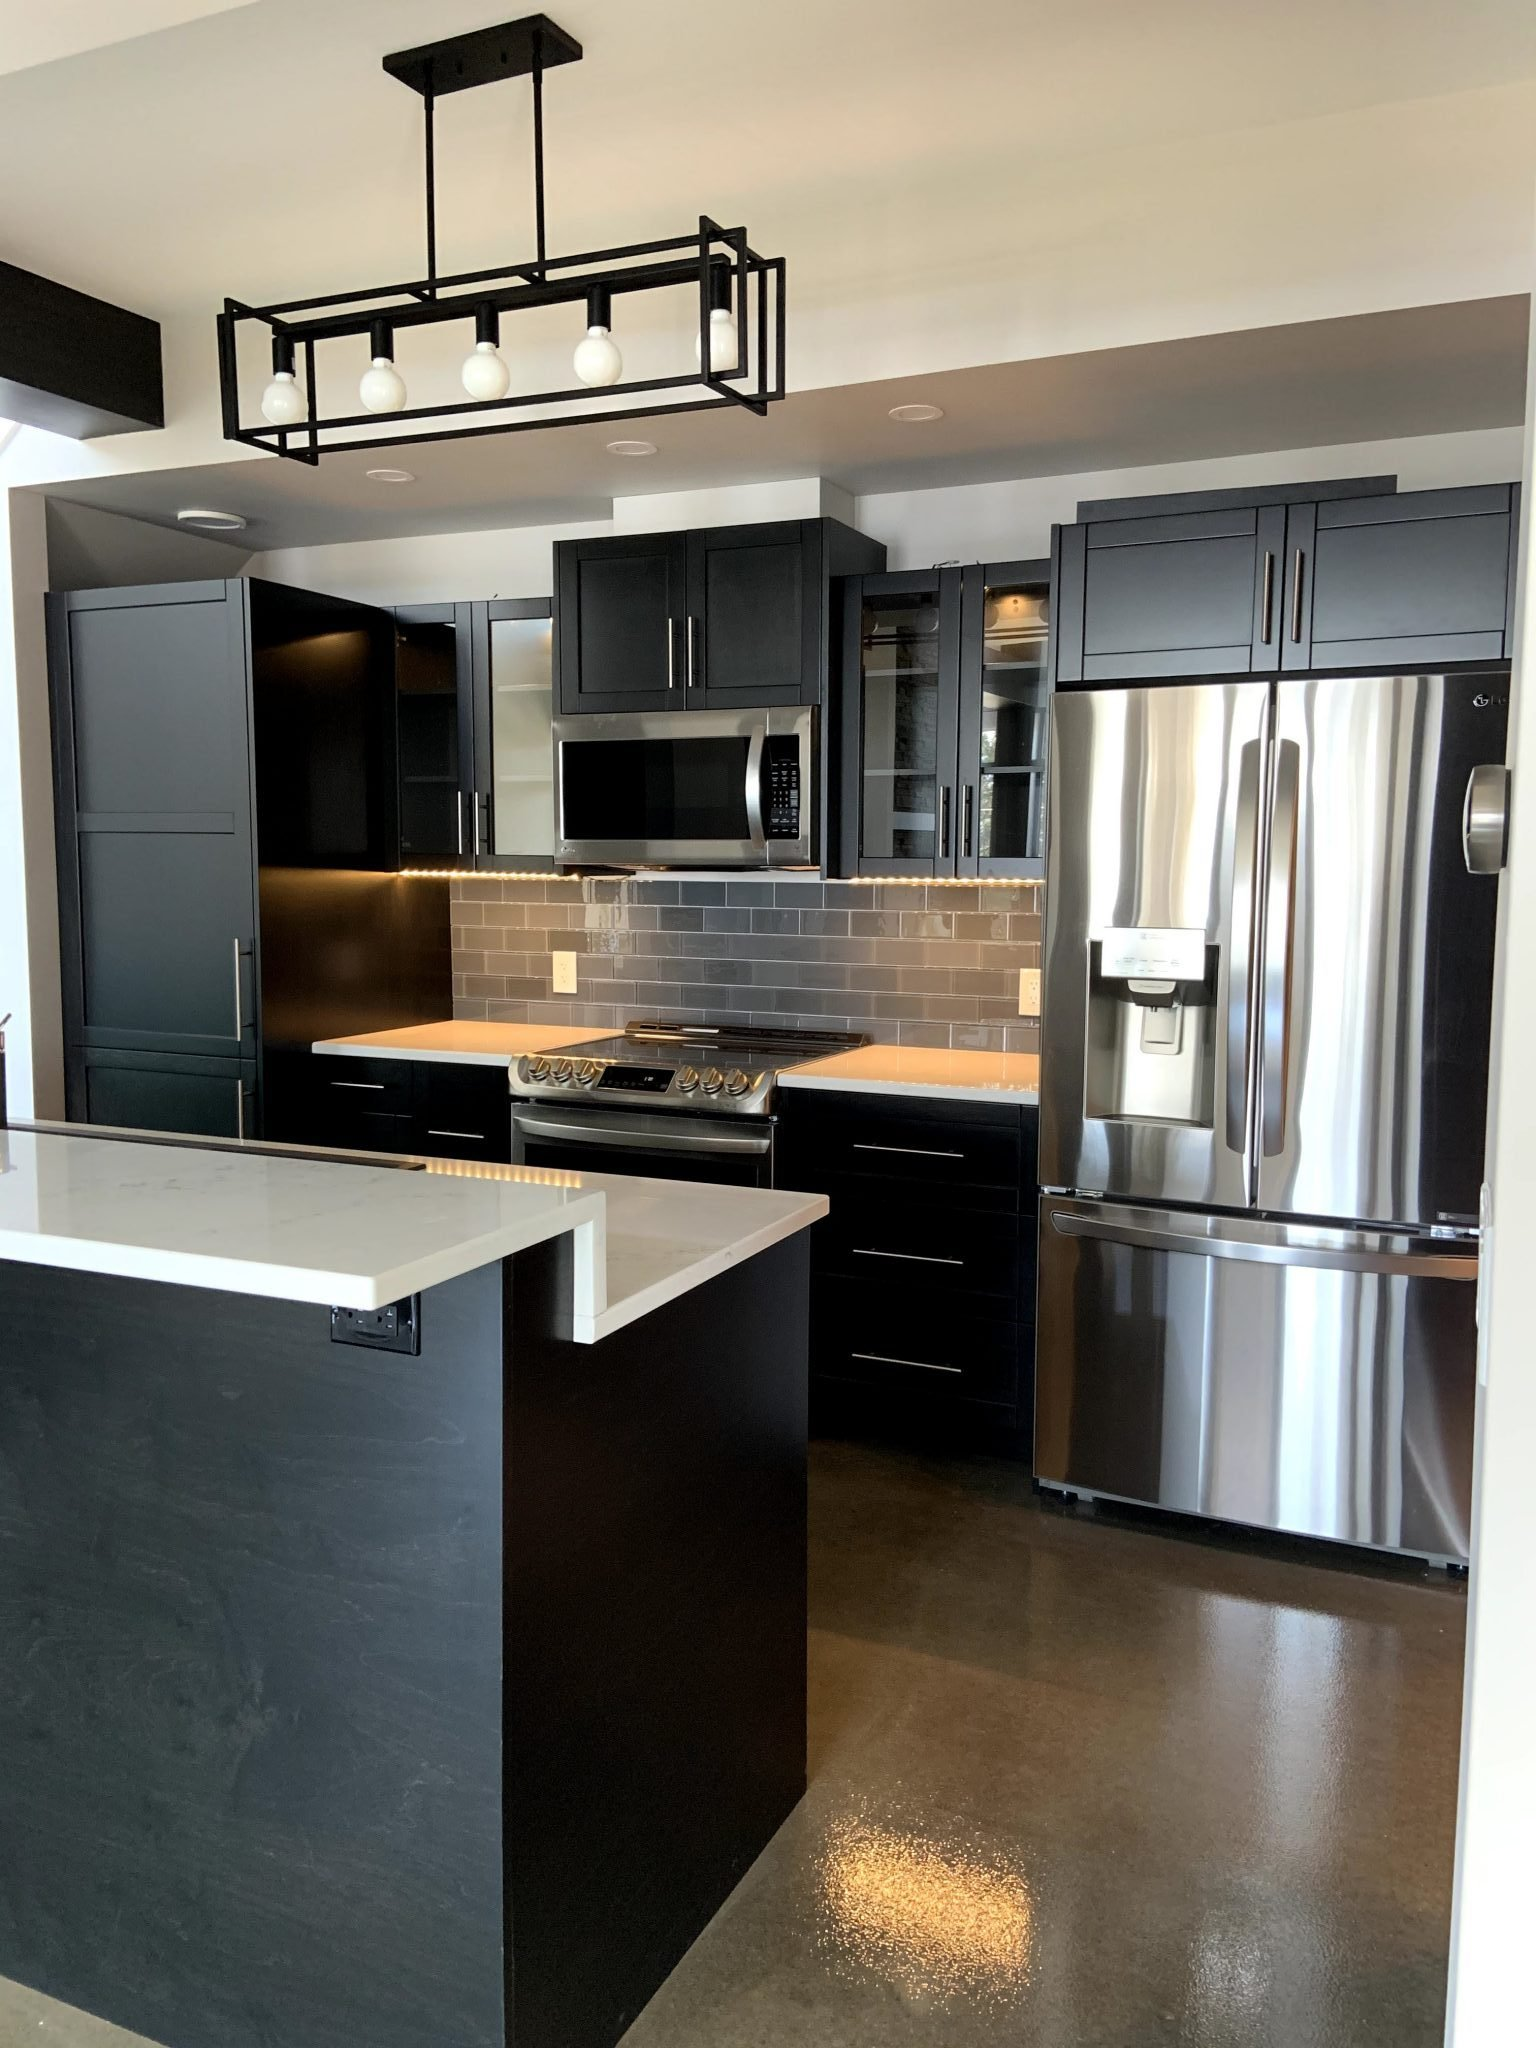 Okanagan Finishing Quality Finish Work View Our Gallery